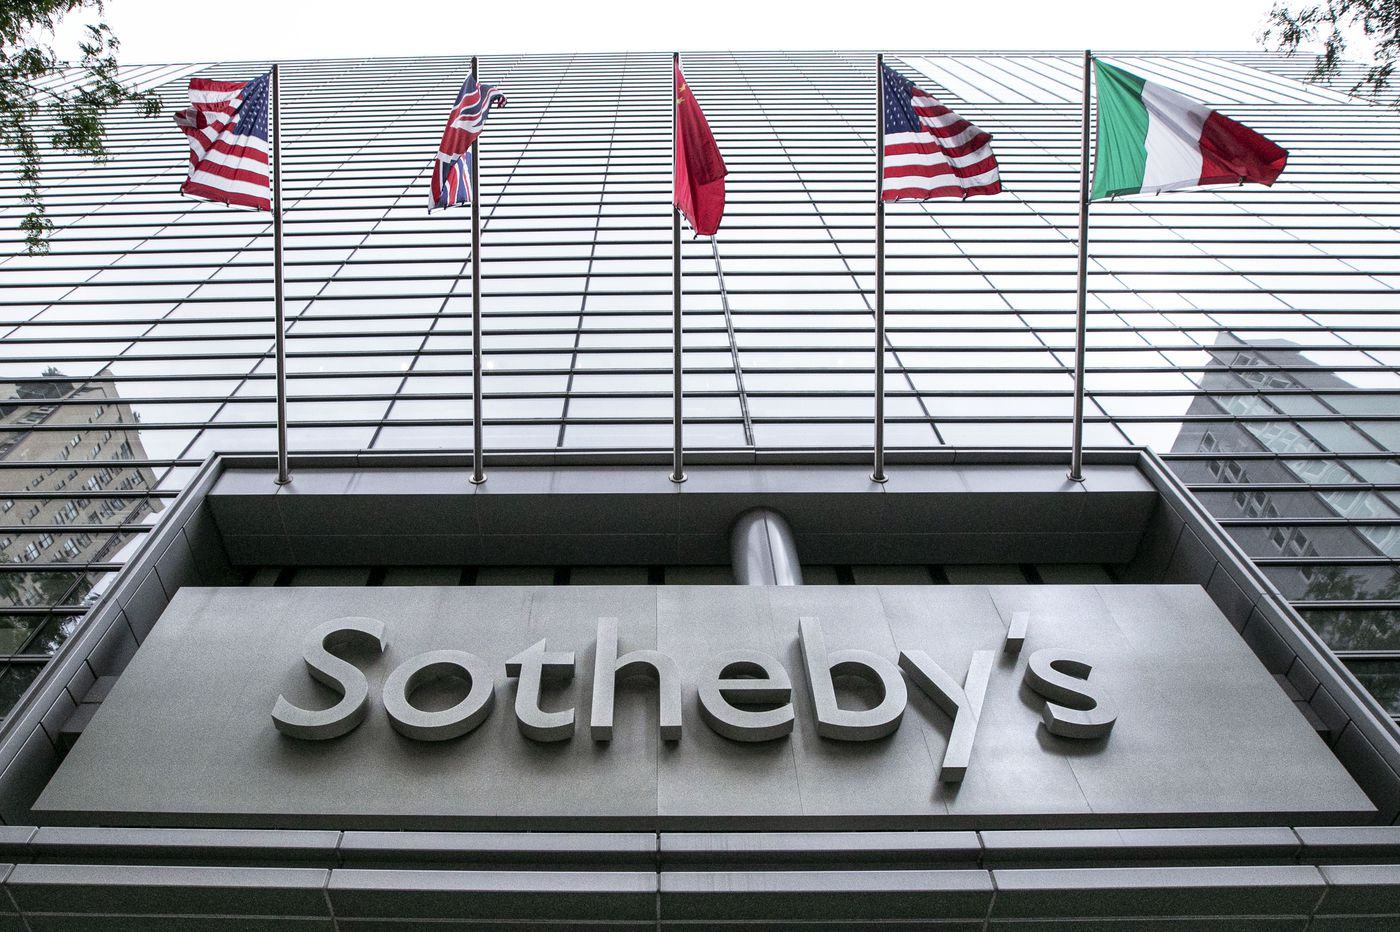 French-Israeli billionaire pays $3.7B for auction house Sotheby's